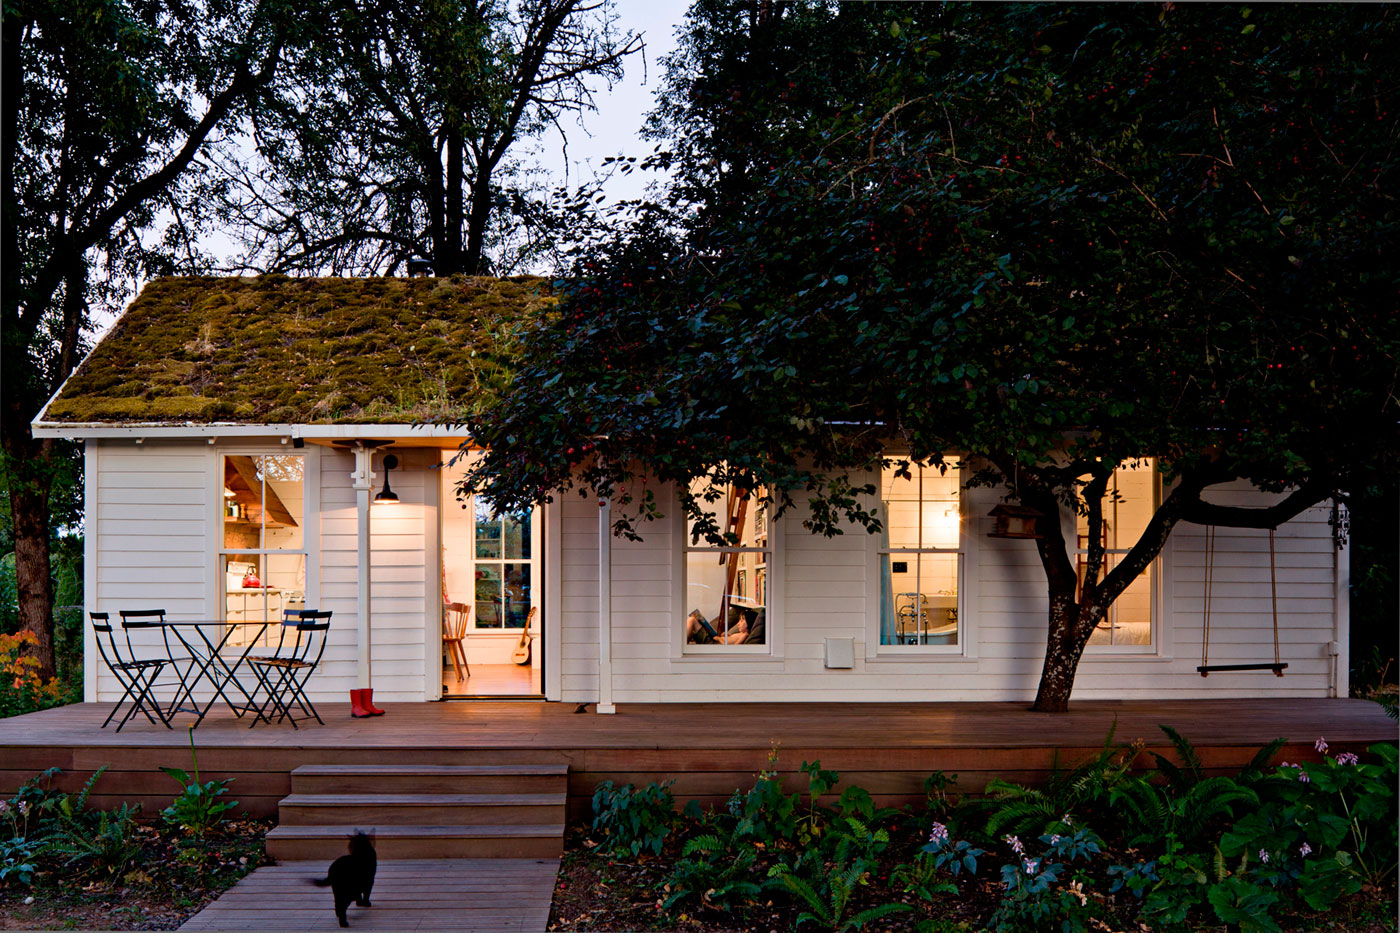 Tiny Home Designs: Beautiful Small Houses That Will Make You Reconsider Your Home